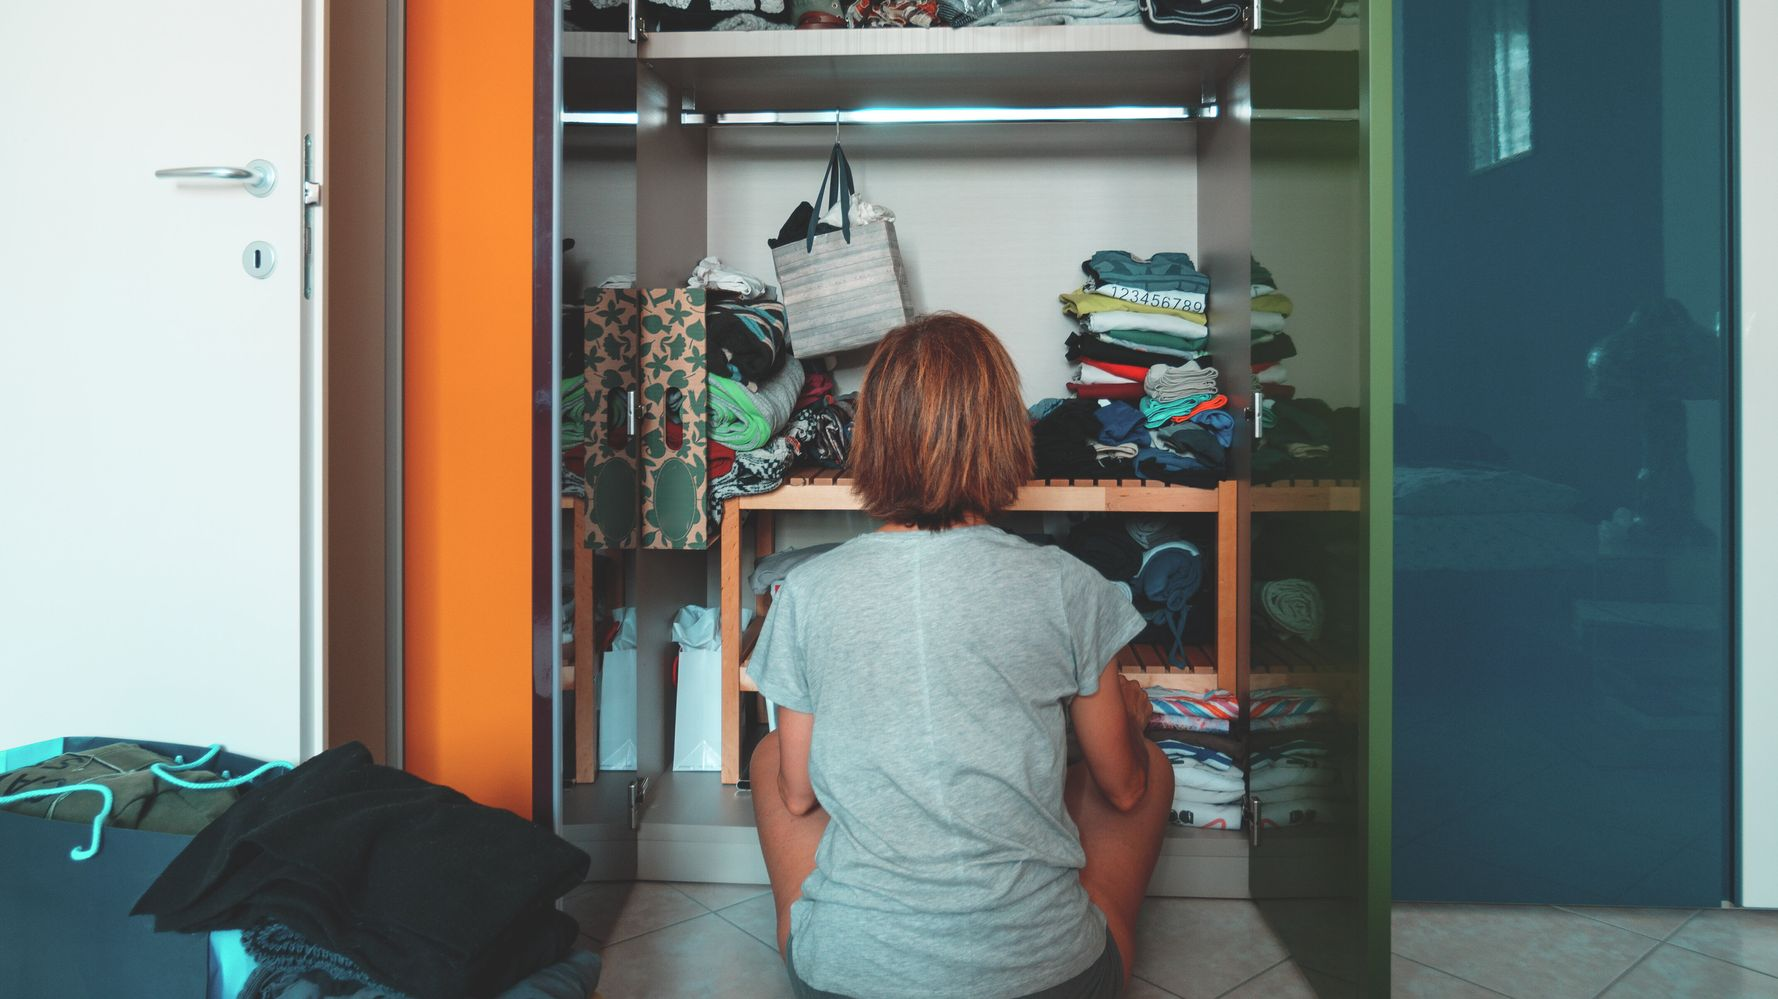 Why Cleaning And Organizing Is So Therapeutic When We're Stressed